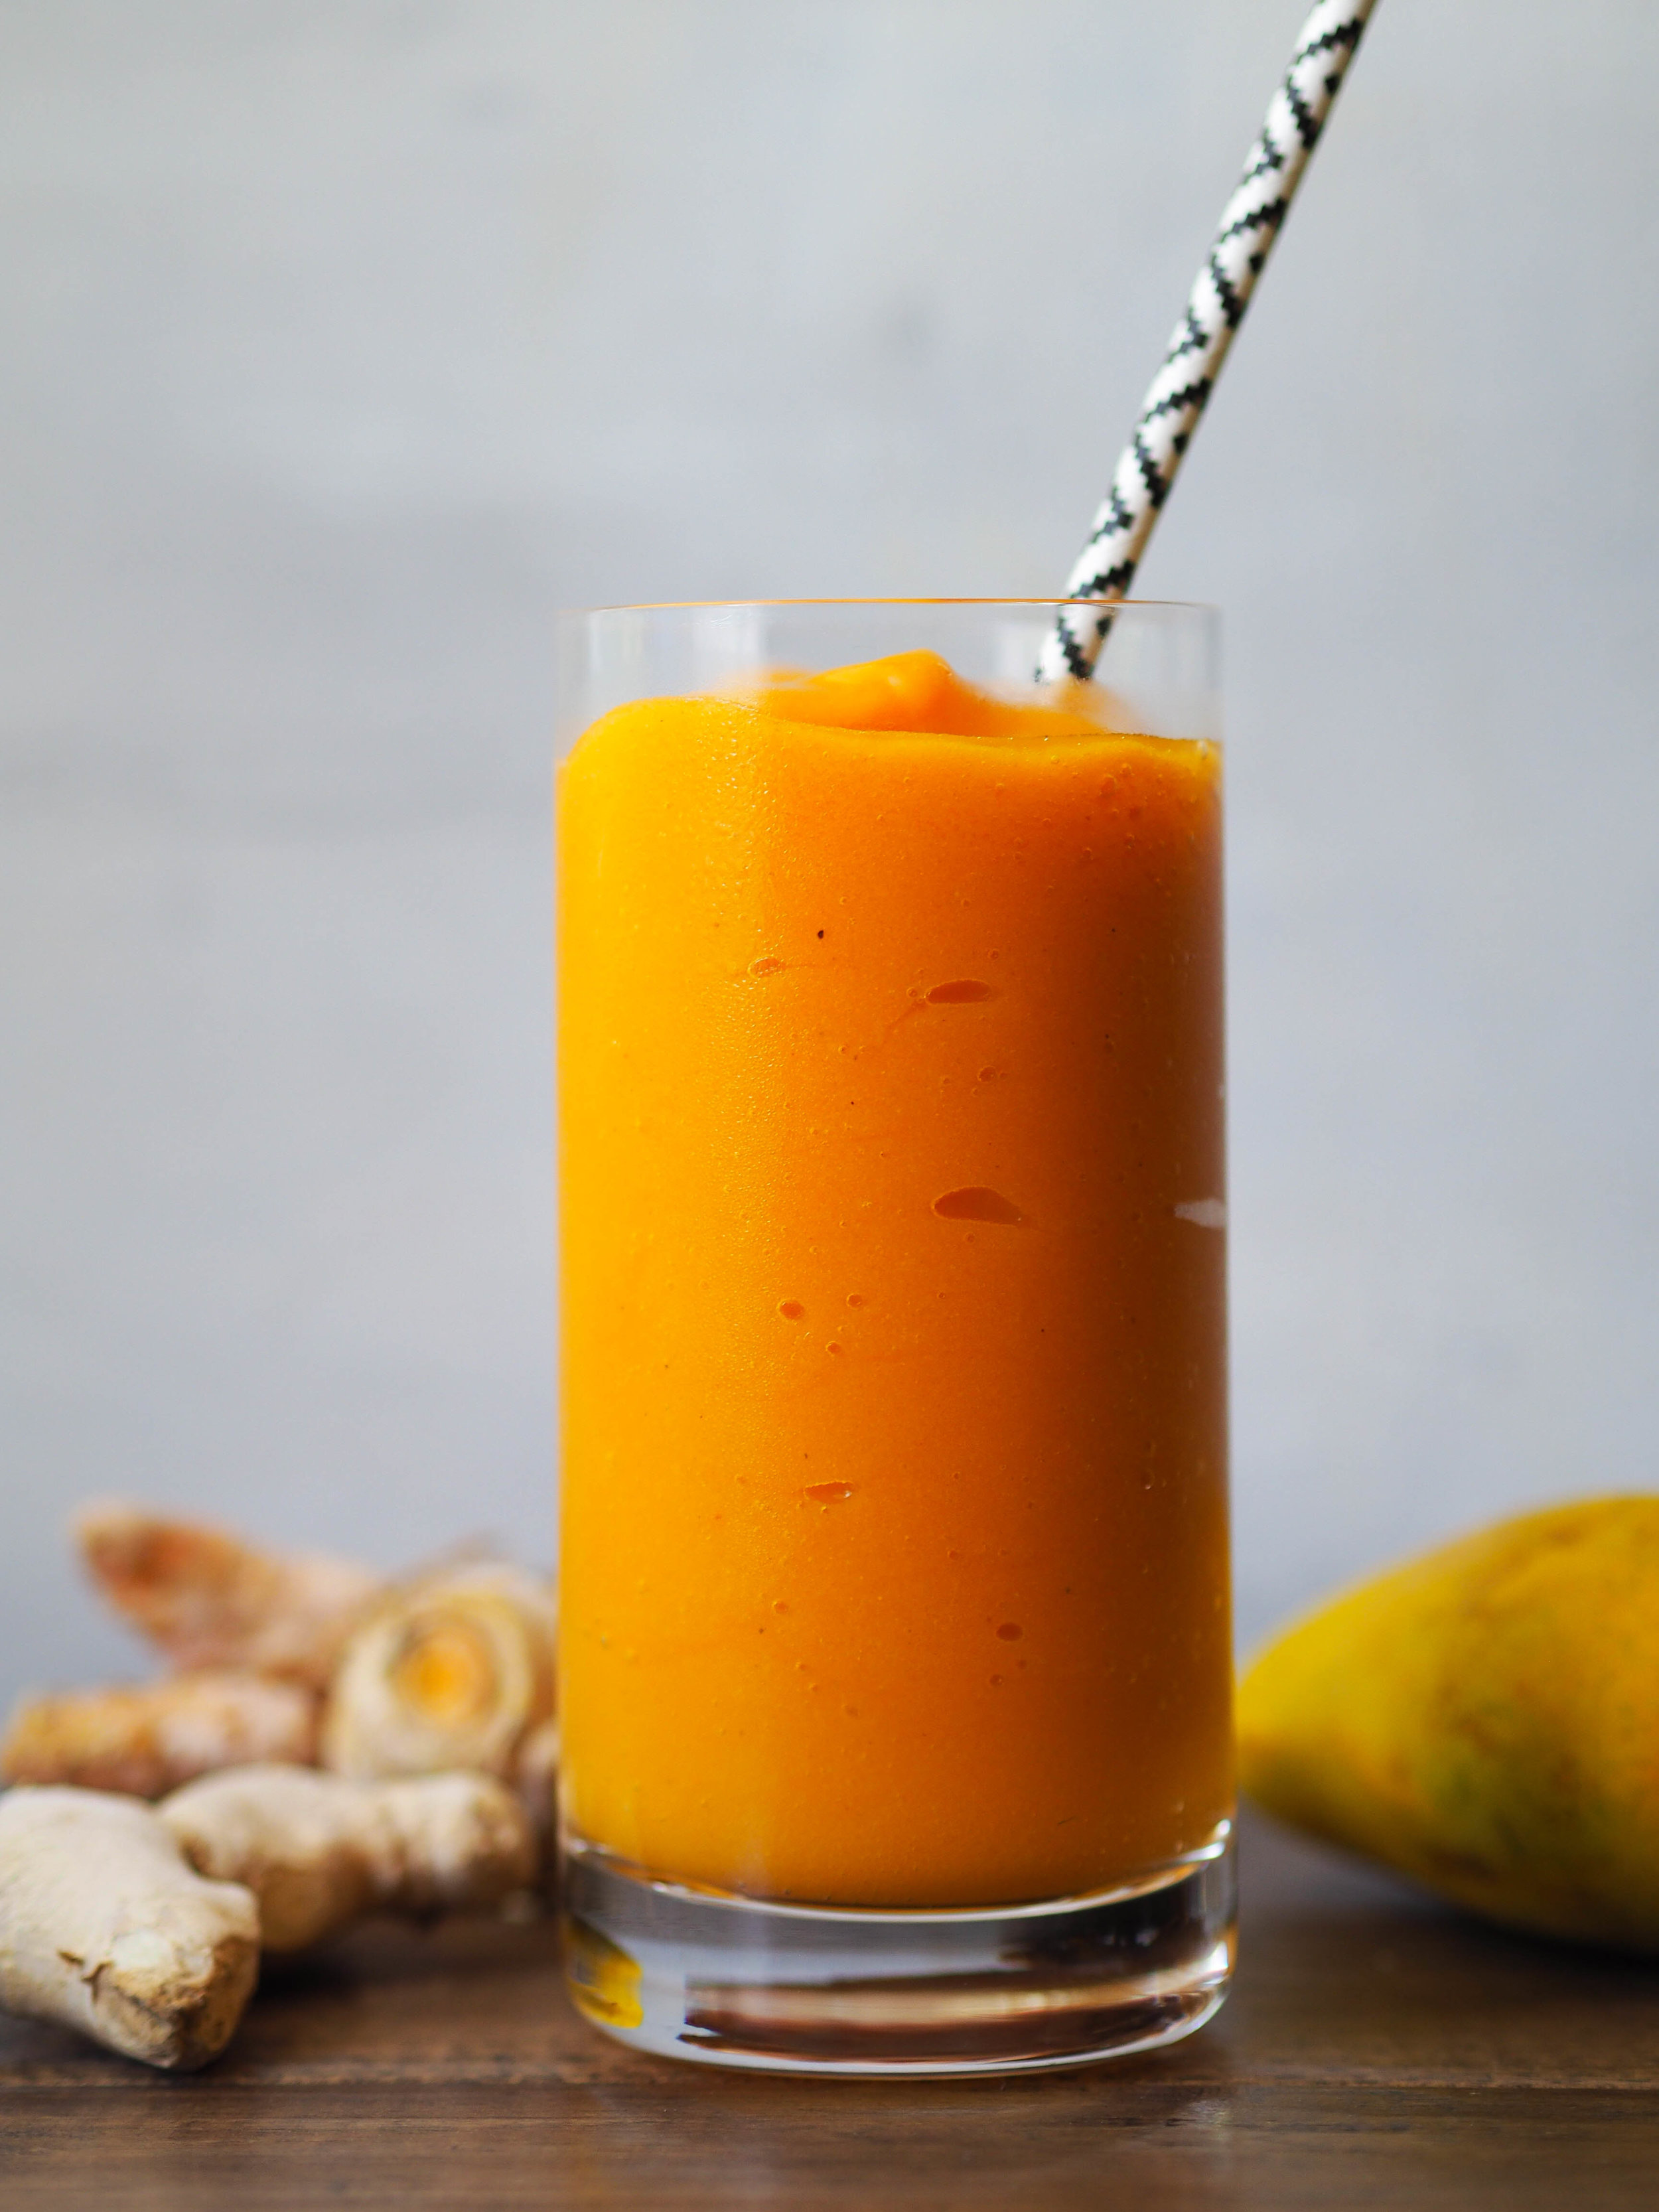 This turmeric mango smoothie is creamy and refreshing! Blended with coconut water so it's extra hydrating! #summer #smoothie #mango #turmeric #healthyrecipe #vegan #vegetarian